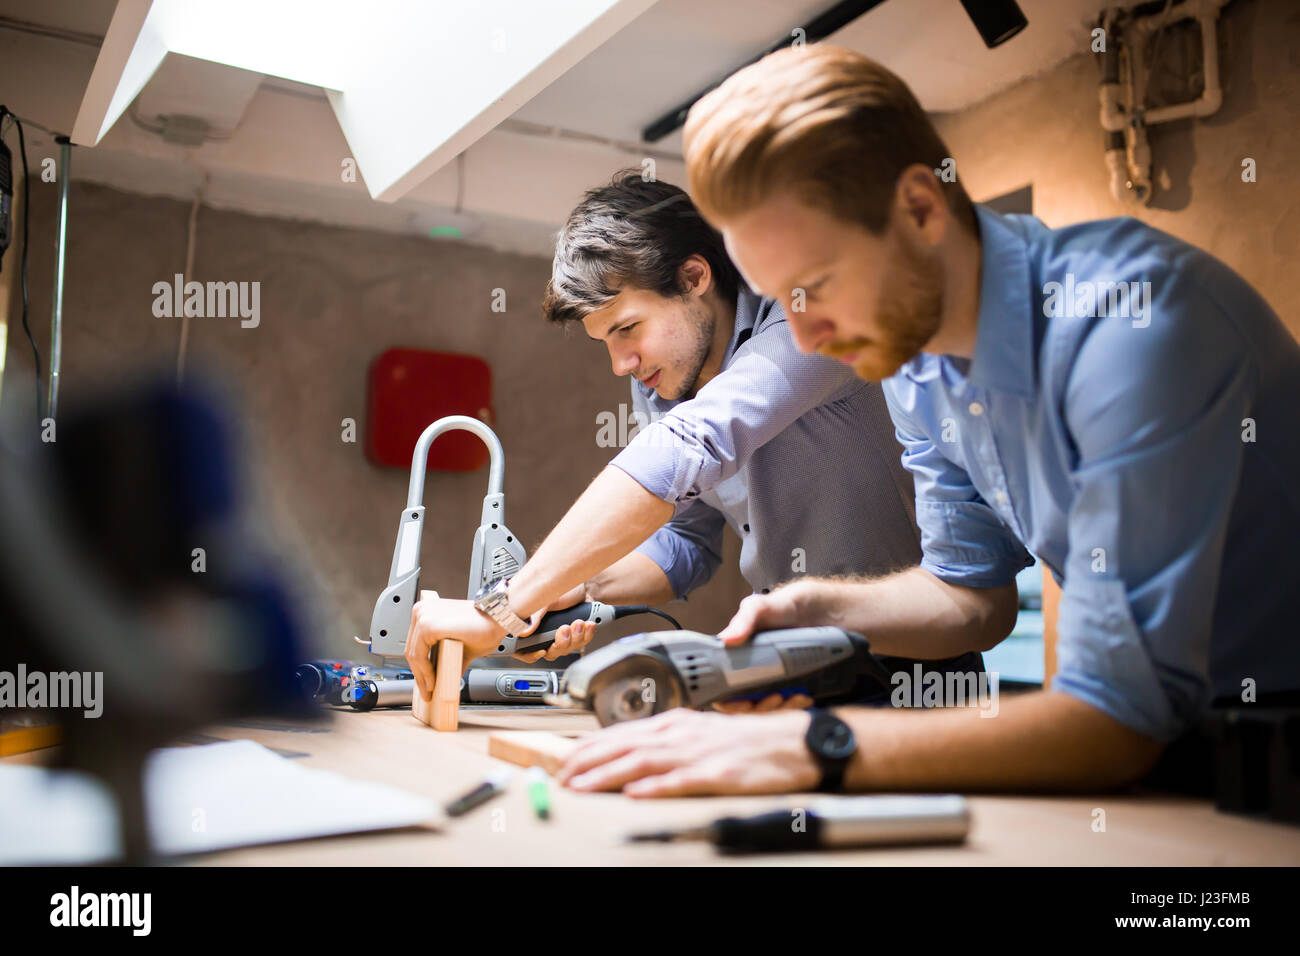 Two designers working on a project in workshop with joint effort - Stock Image